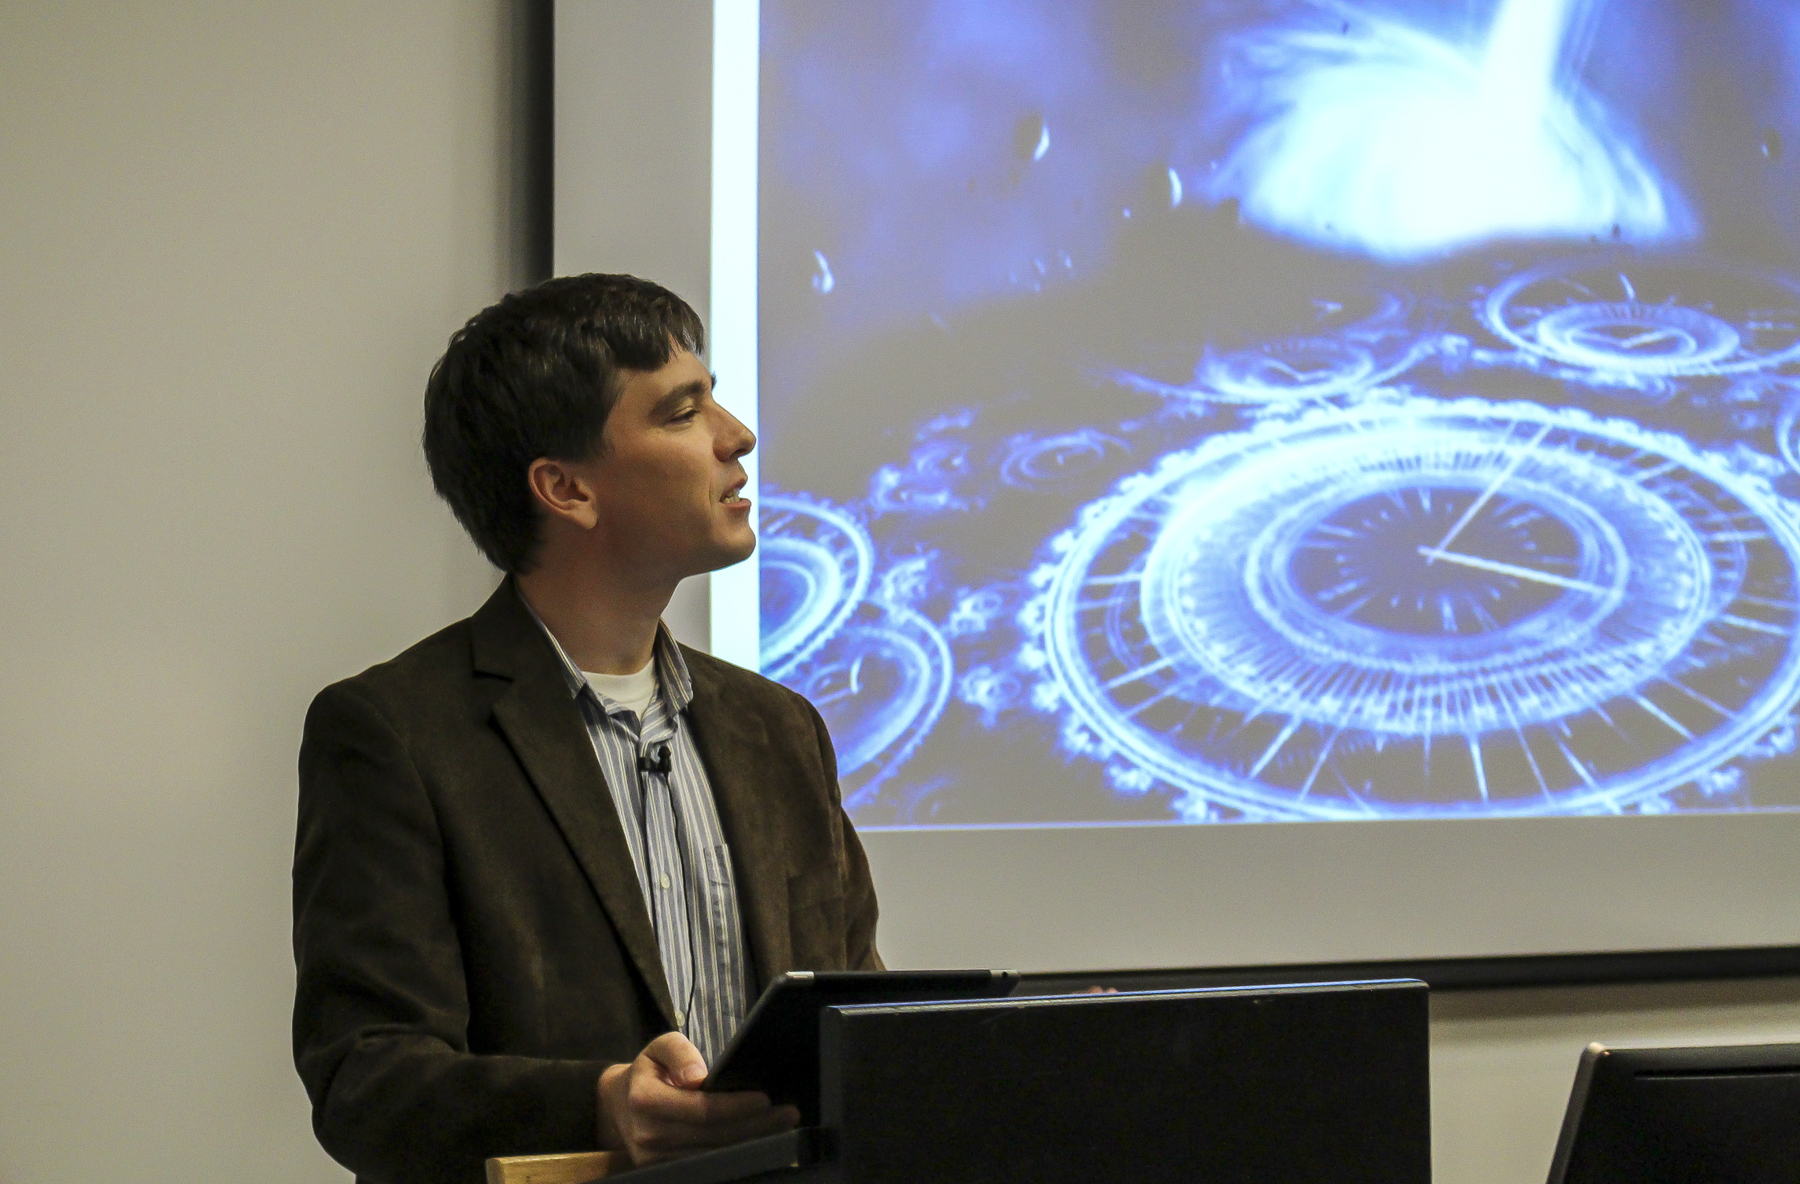 John Fekete Lecture Series: science needs science fiction